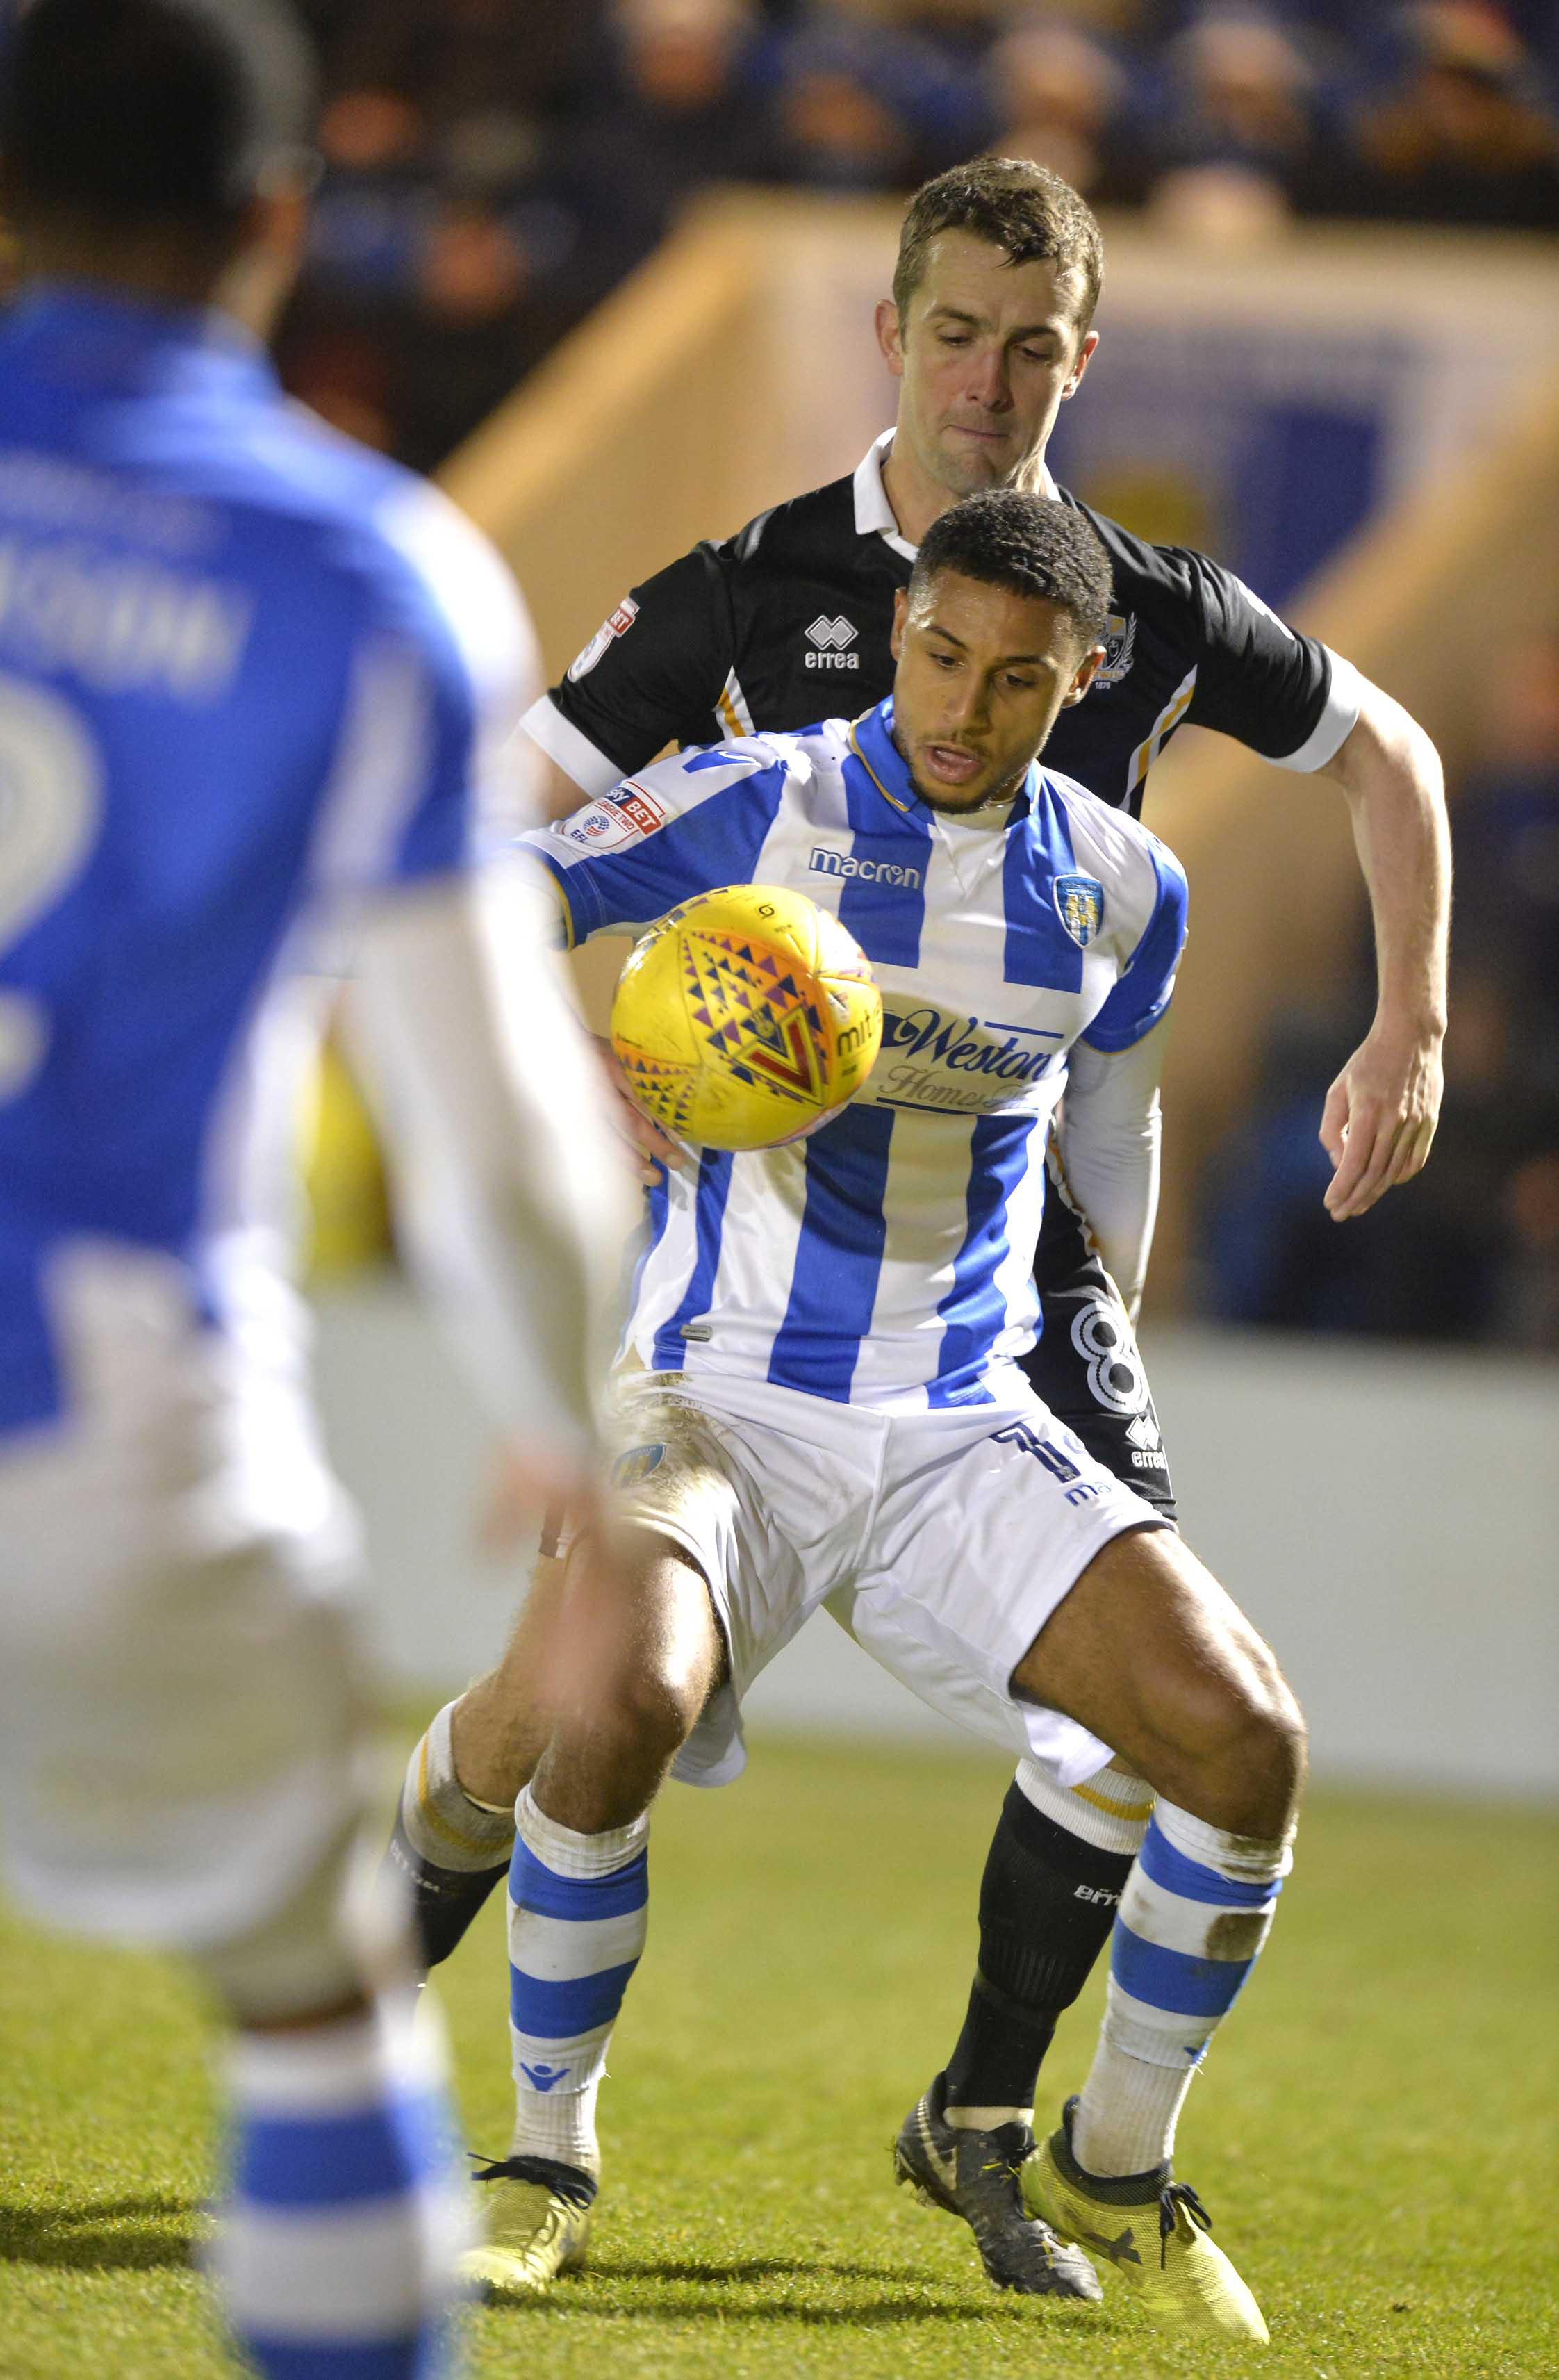 Midfield tussle - Brandon Comley in action for Colchester United in their 1-1 draw with Port Vale Picture: STEVE BRADING